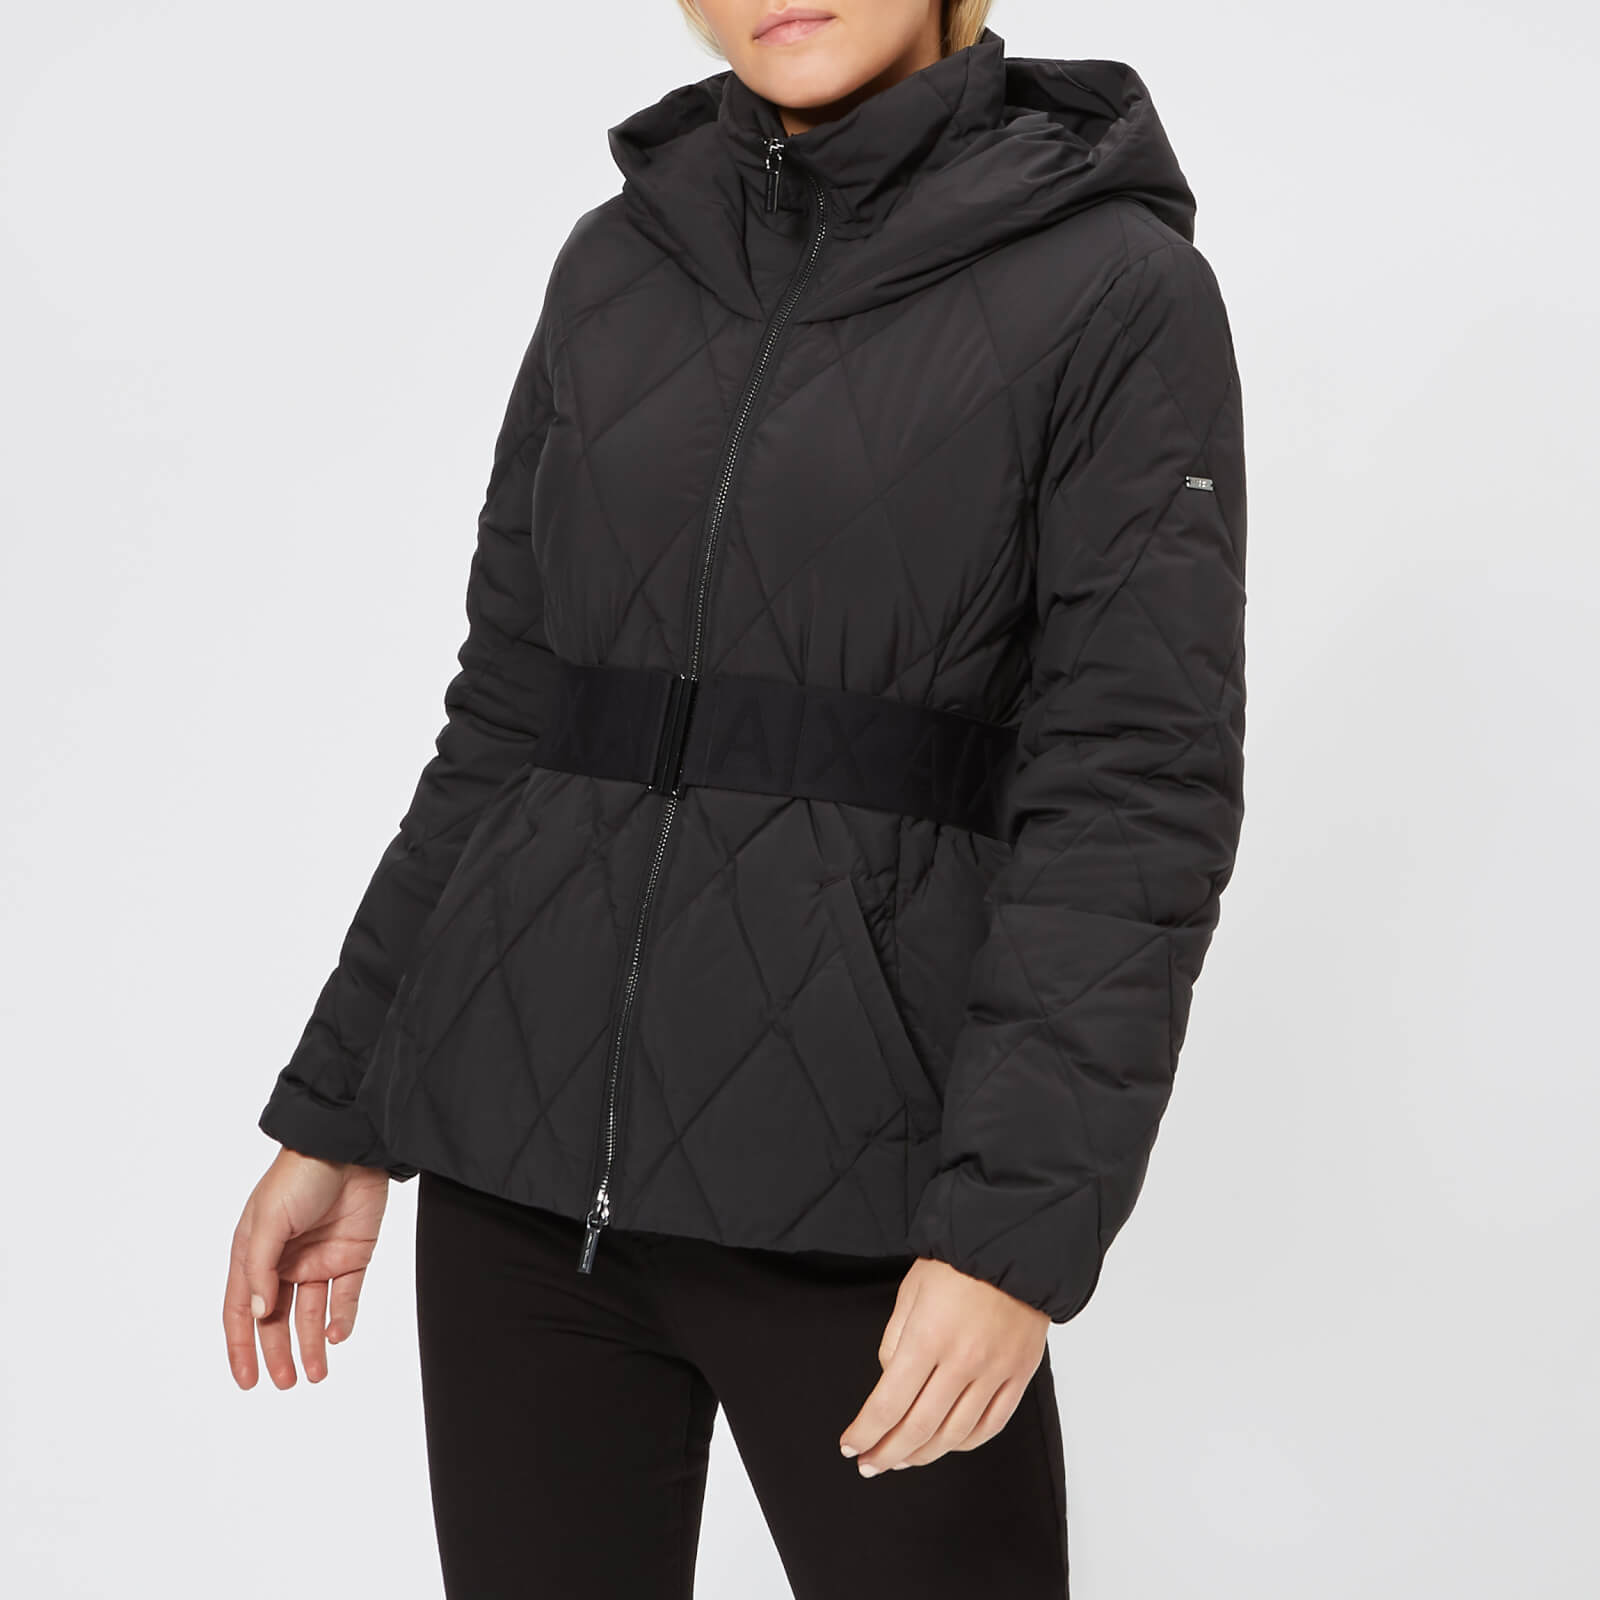 a072f2ab9 Armani Exchange Women's Short Quilted Hooded Coat - Black